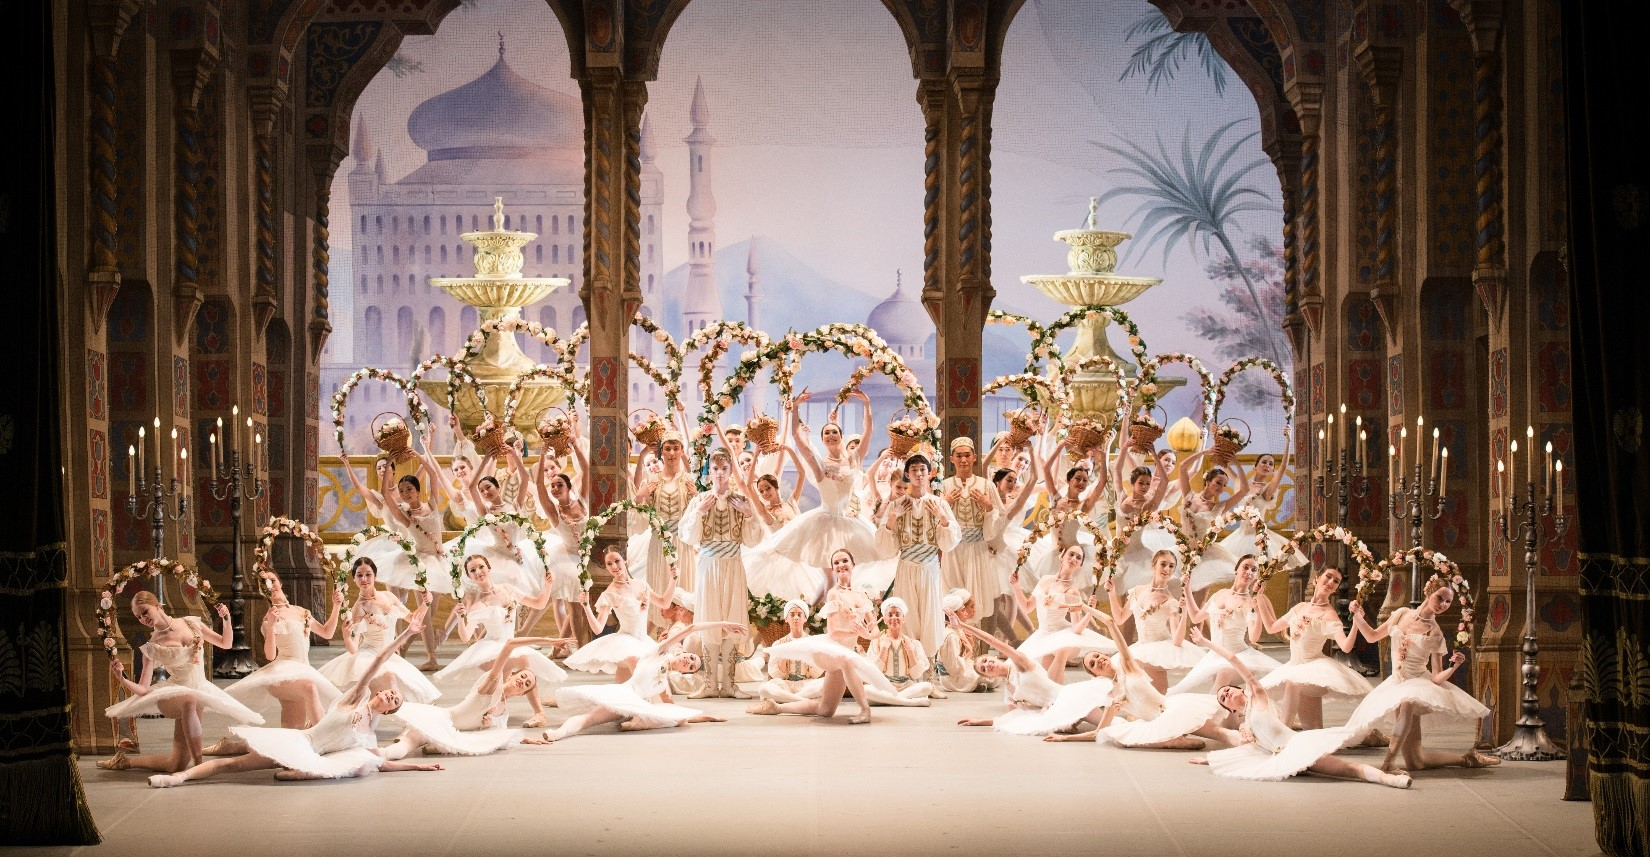 More performances on the bolshoi theatre stage tala for Jardin anime